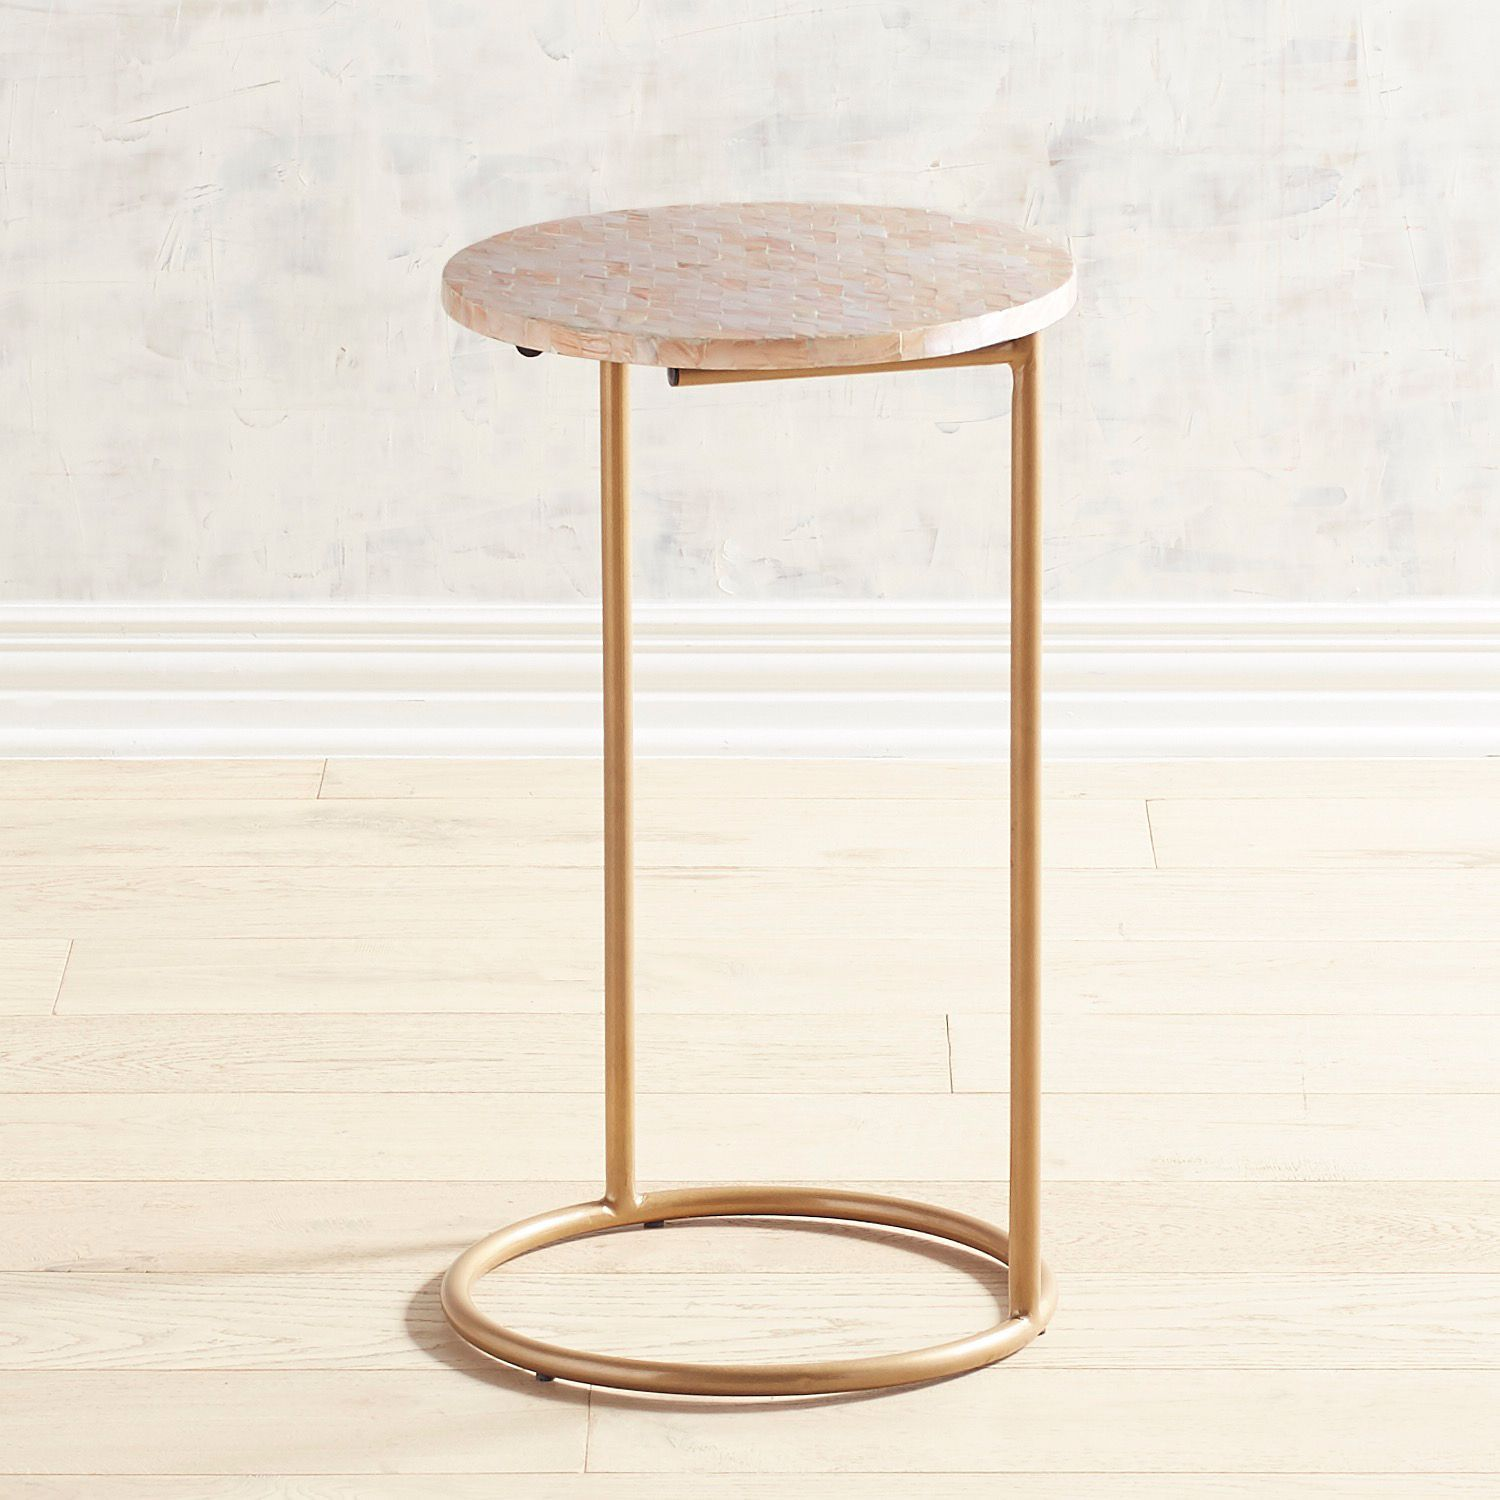 Blush Mother-of-Pearl C-Table | Pier 1 Imports | C table ...